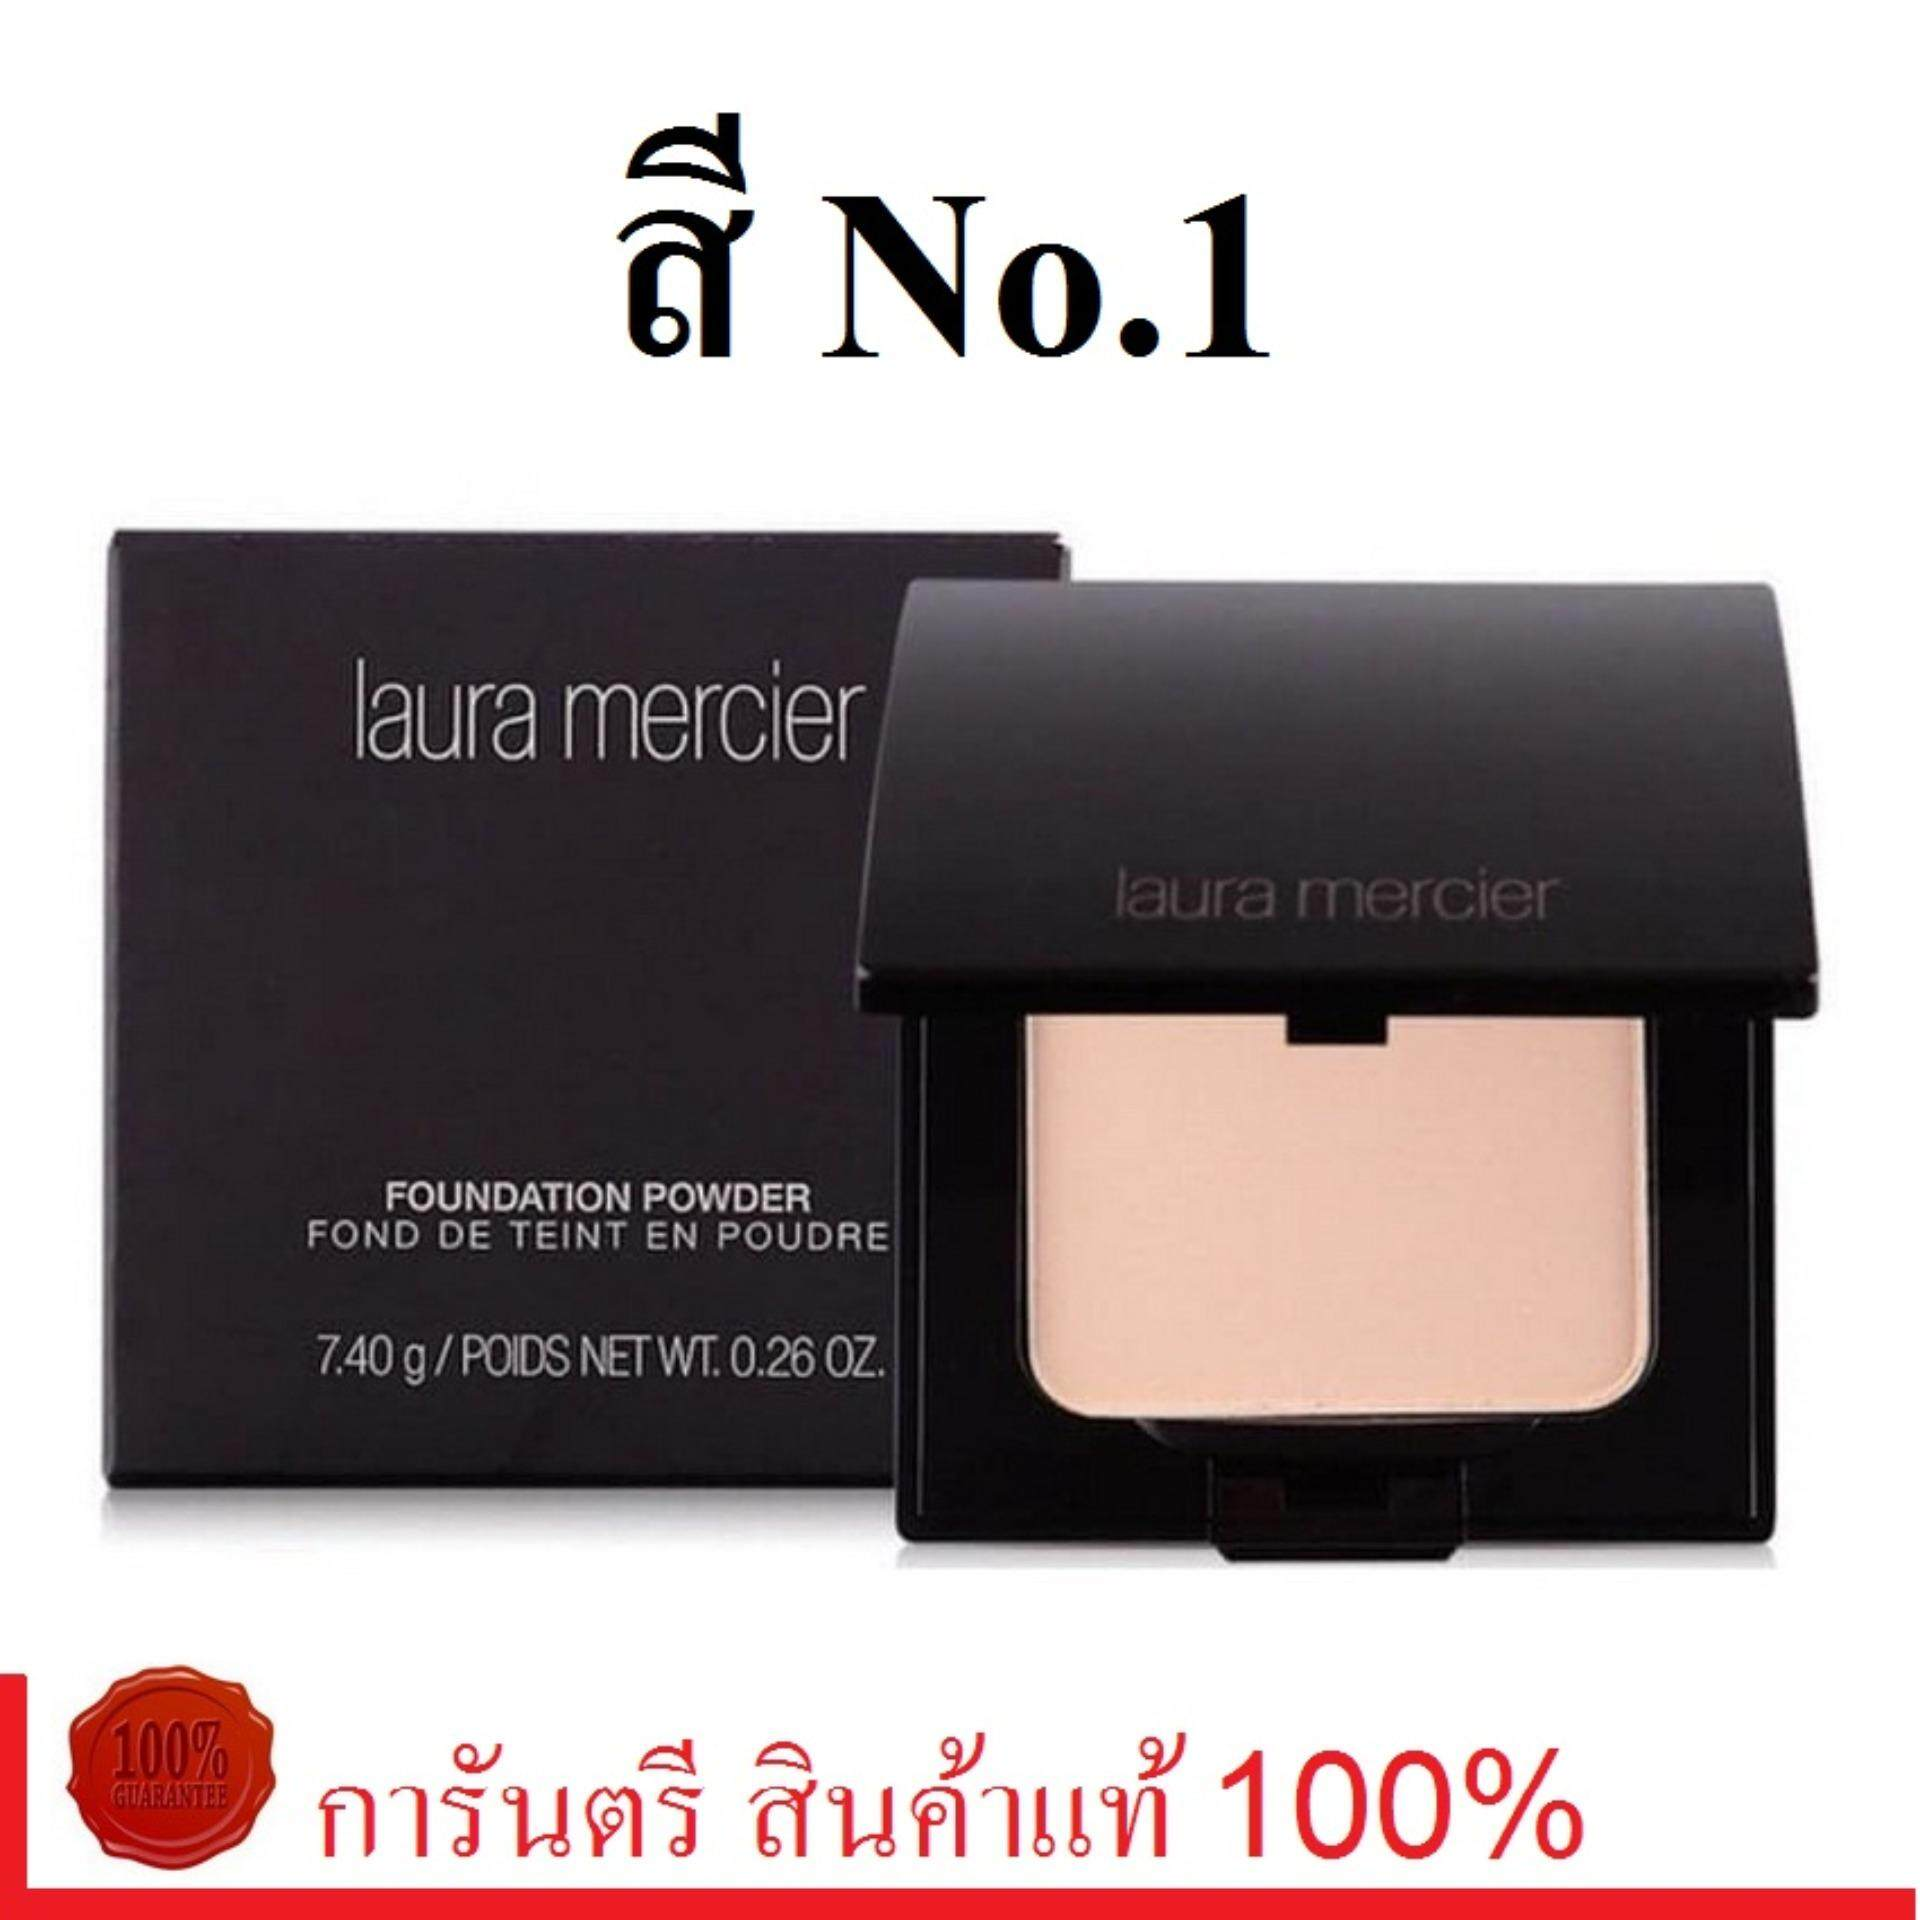 Laura Mercier Foundation Powder 7.4g (ขนาดปรกติ)